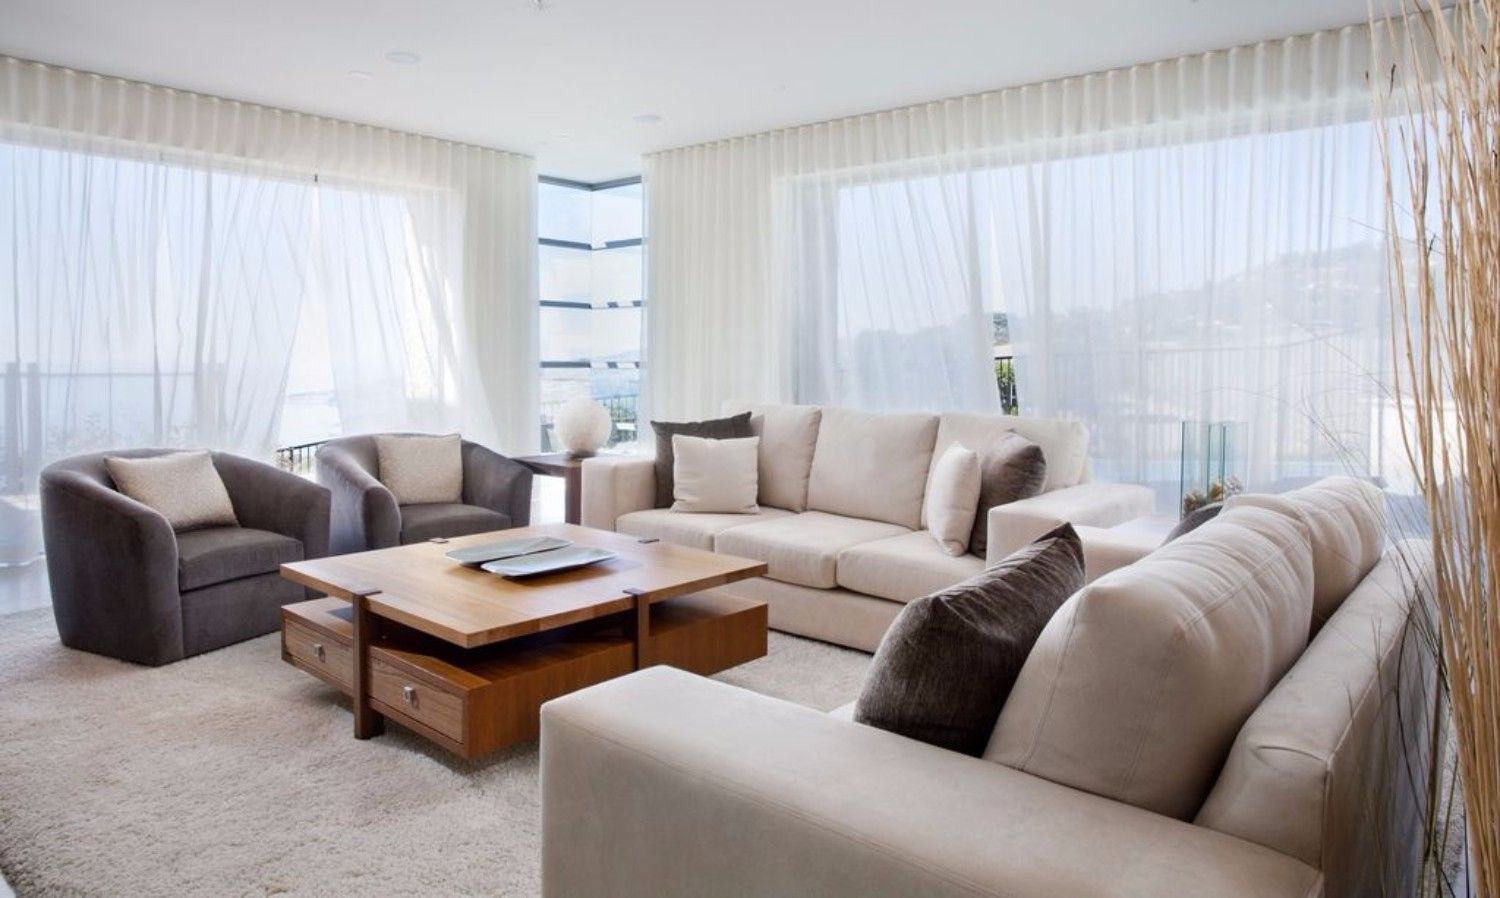 Inspirational Modern Living Room Designs Coffee Side Tables White Curtains Living Room Living Room Design Modern Curtains Living Room Modern